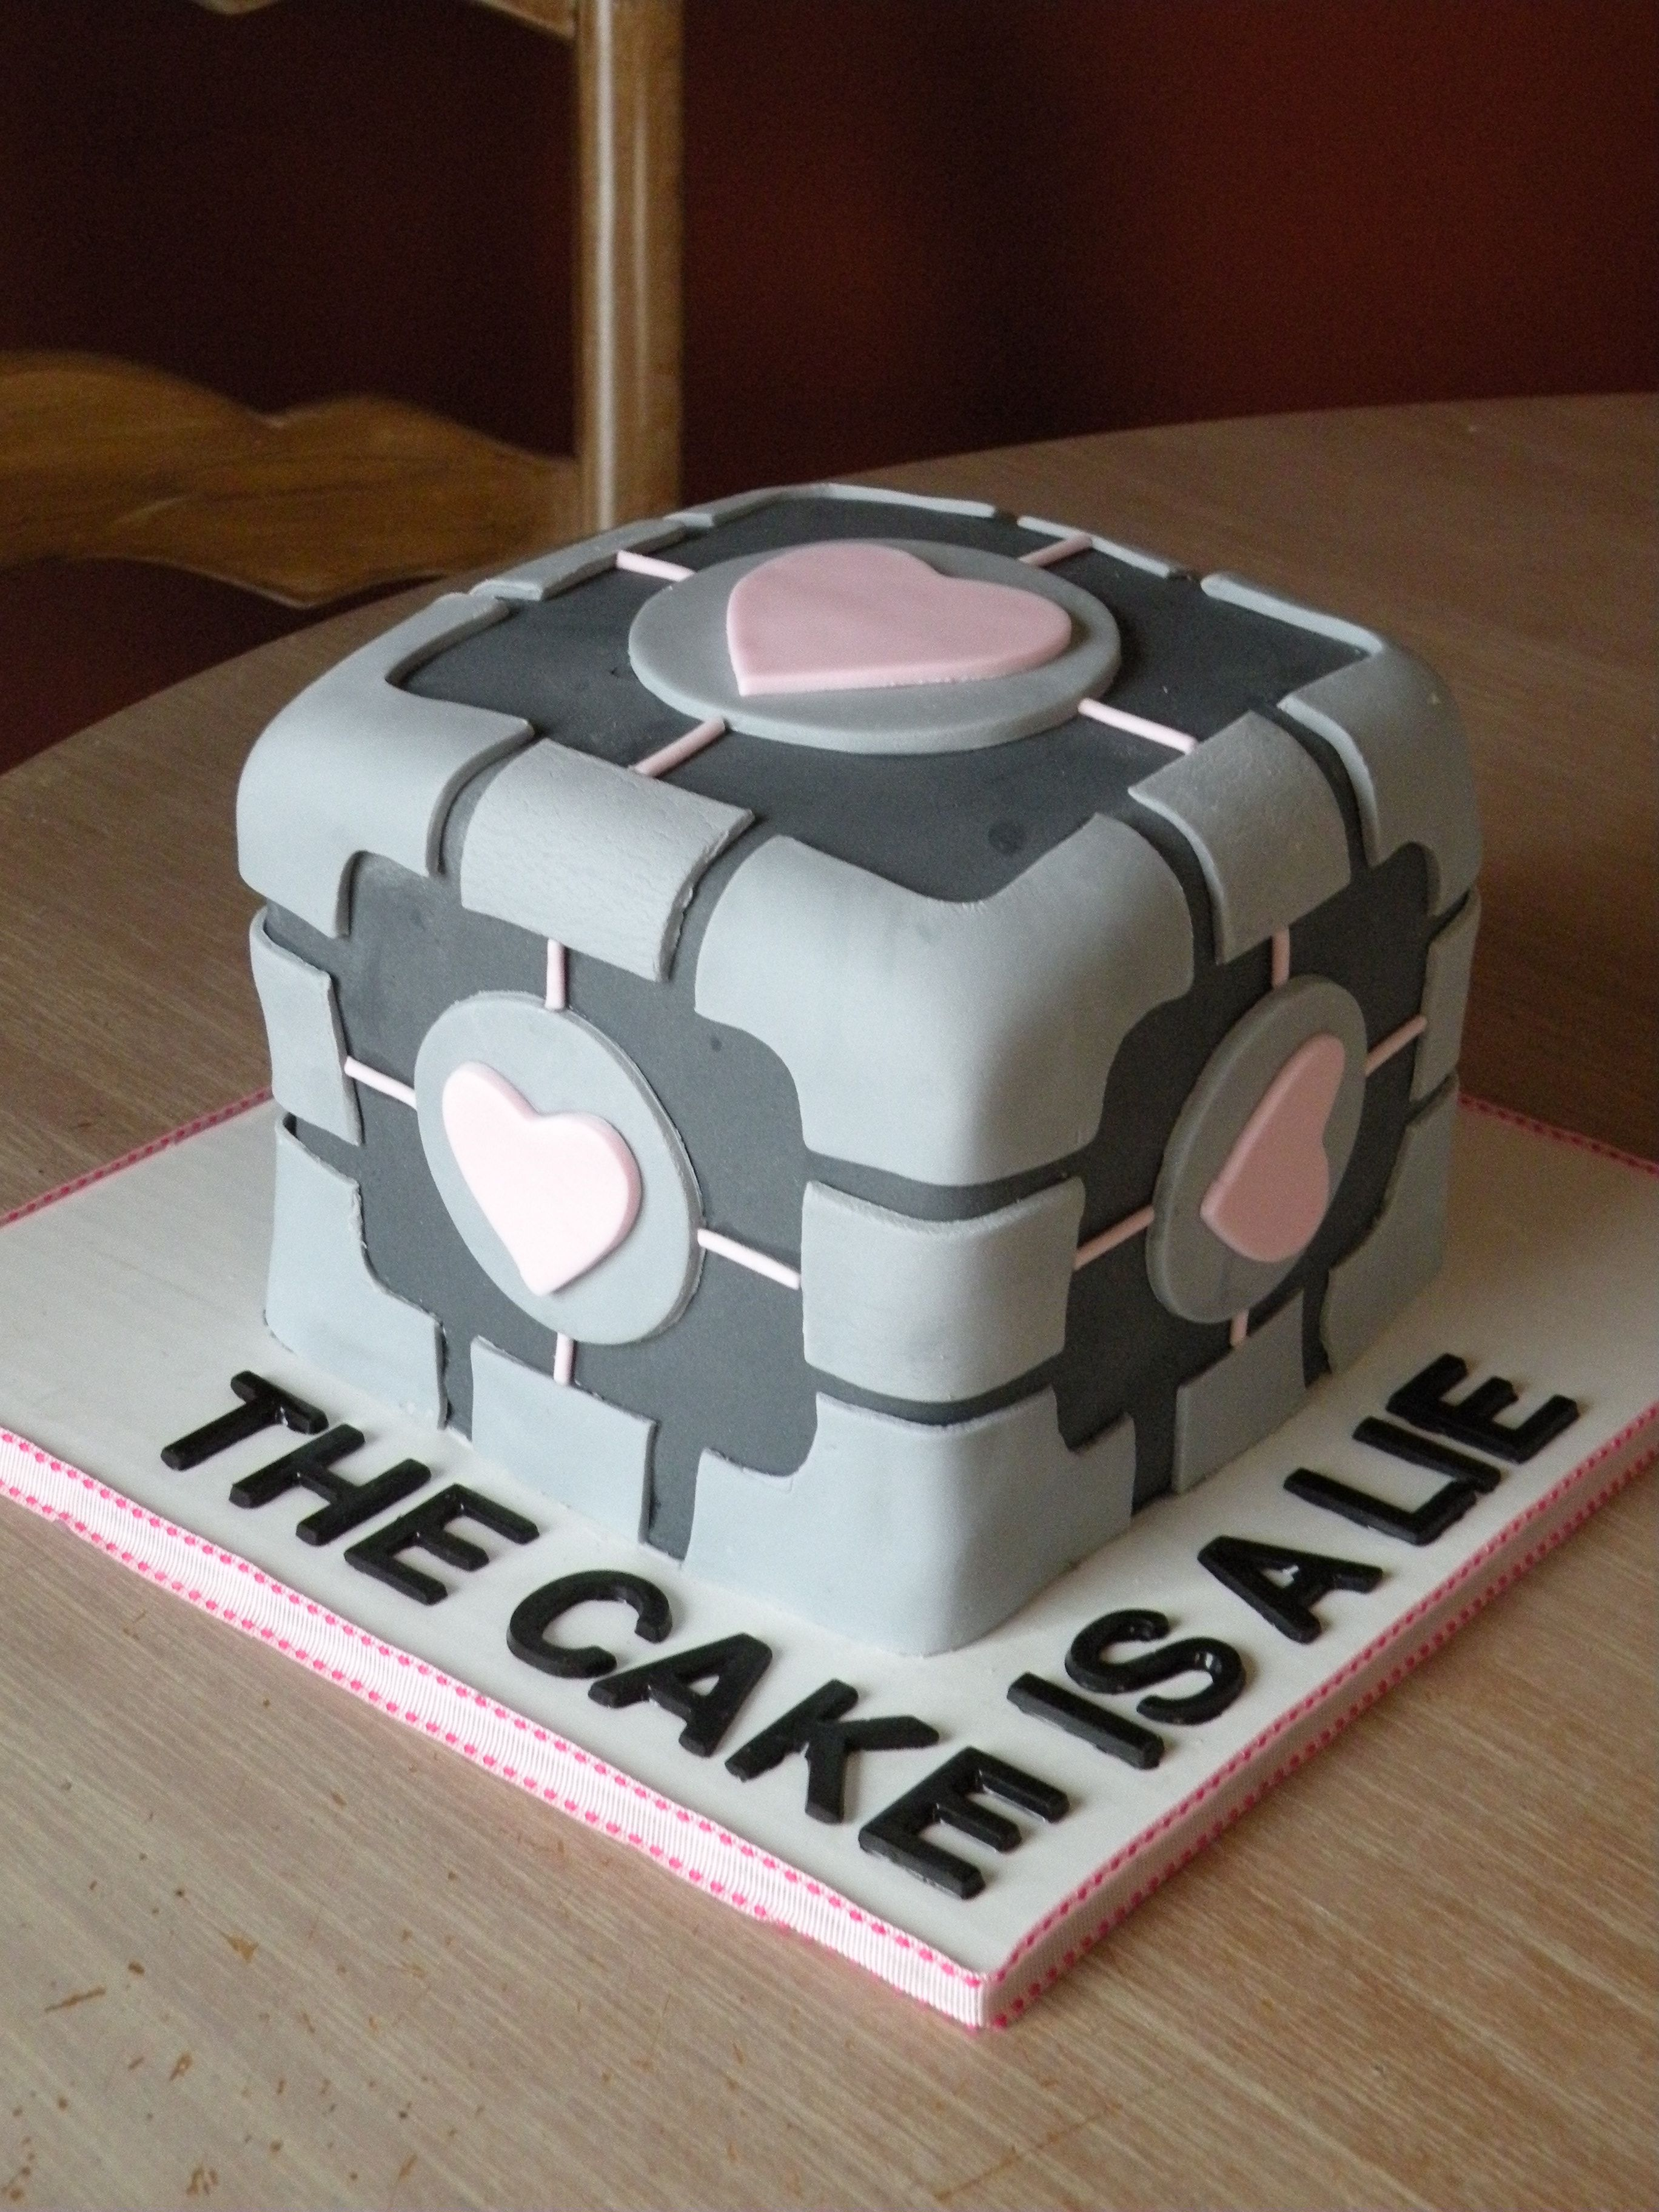 companion cube cake from the Portal video game Video Game